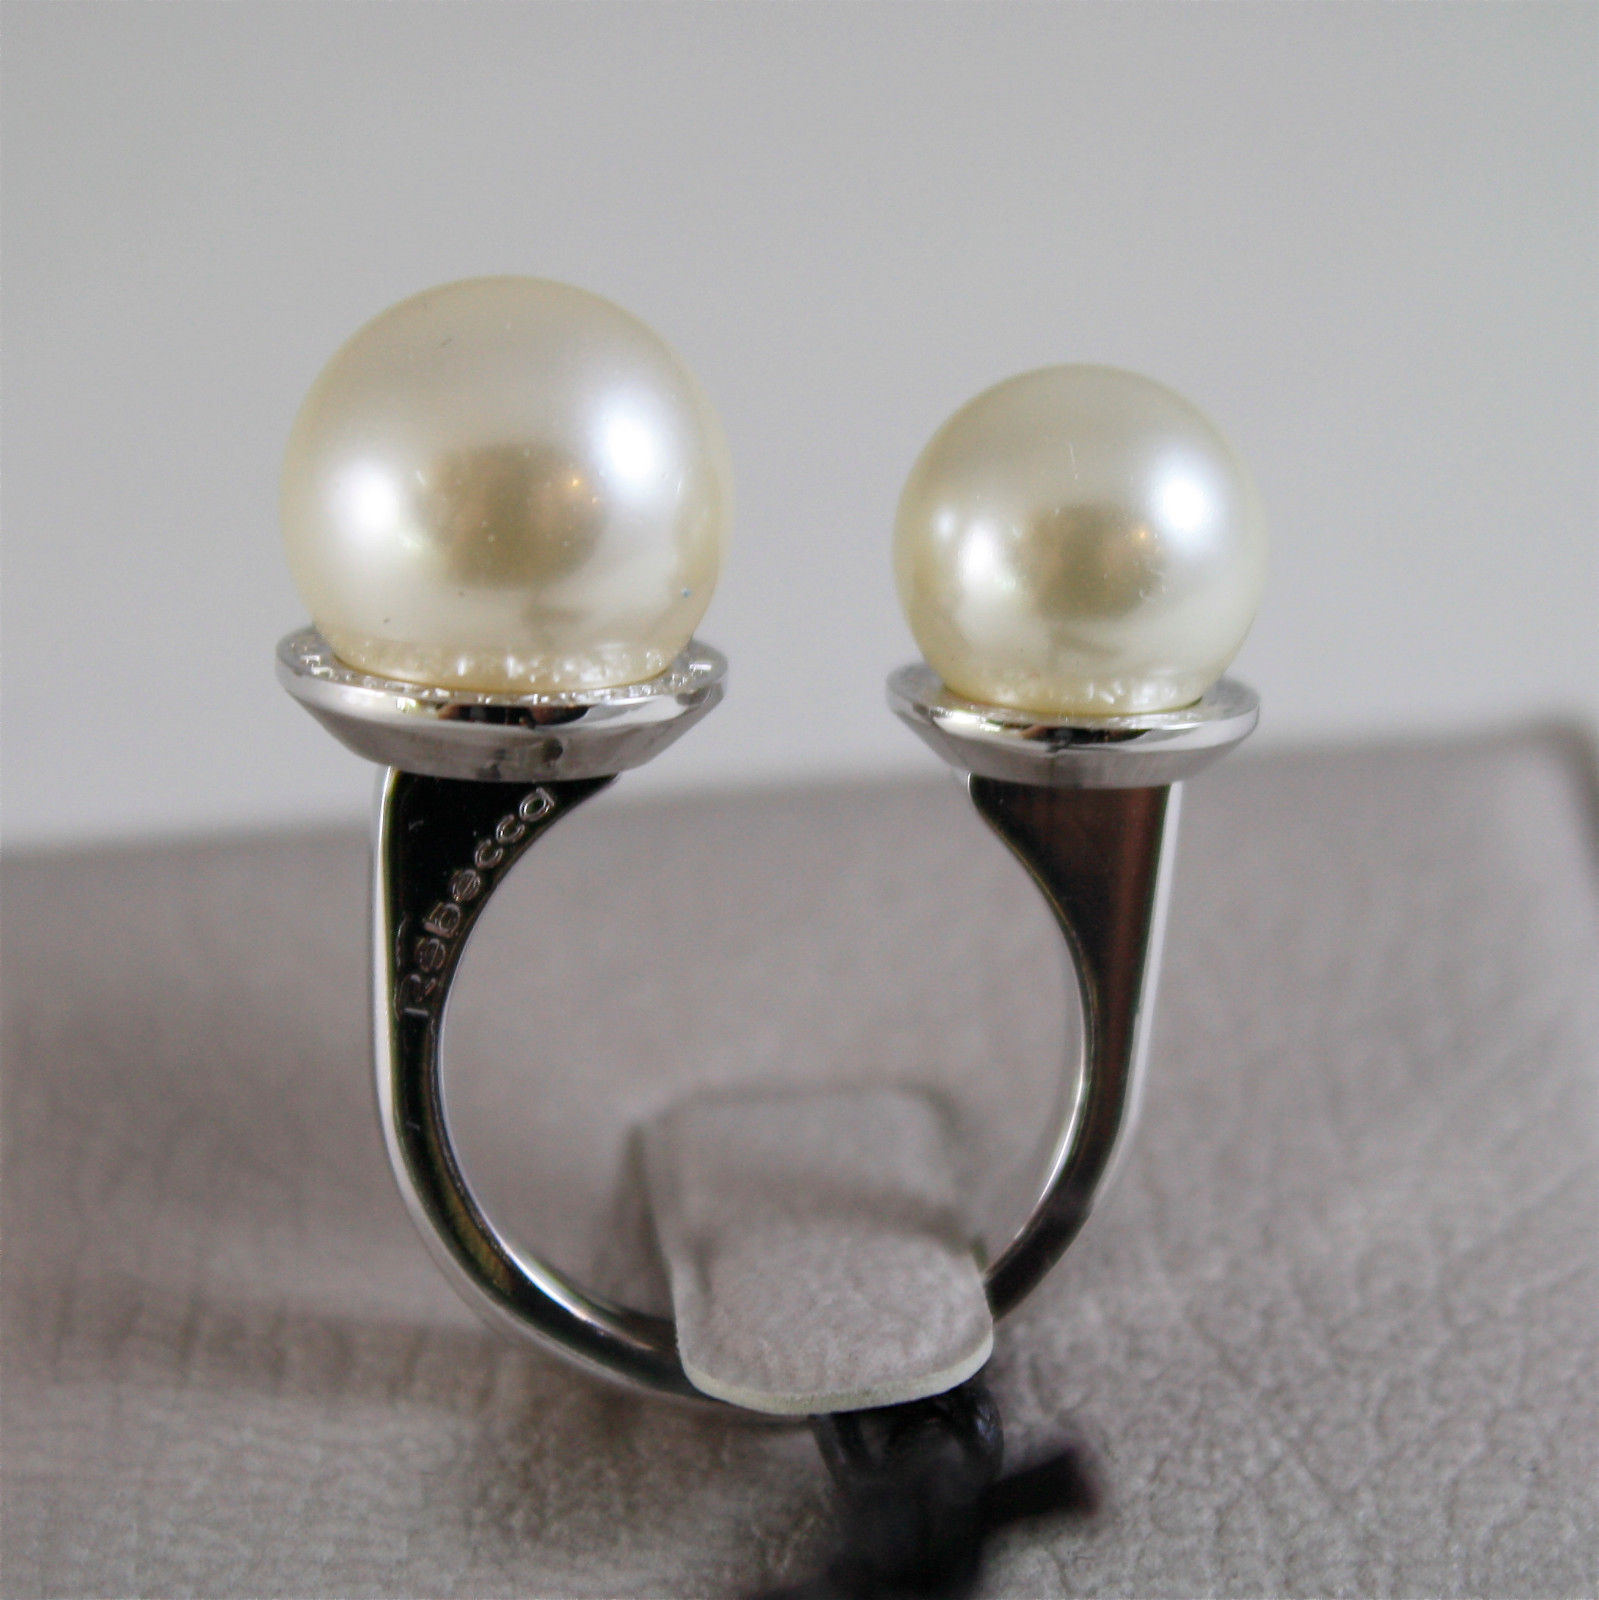 WHITE GOLD PLATED BRONZE REBECCA PEARLS RING HOLLYWOOD BHOABB07 MADE IN ITALY